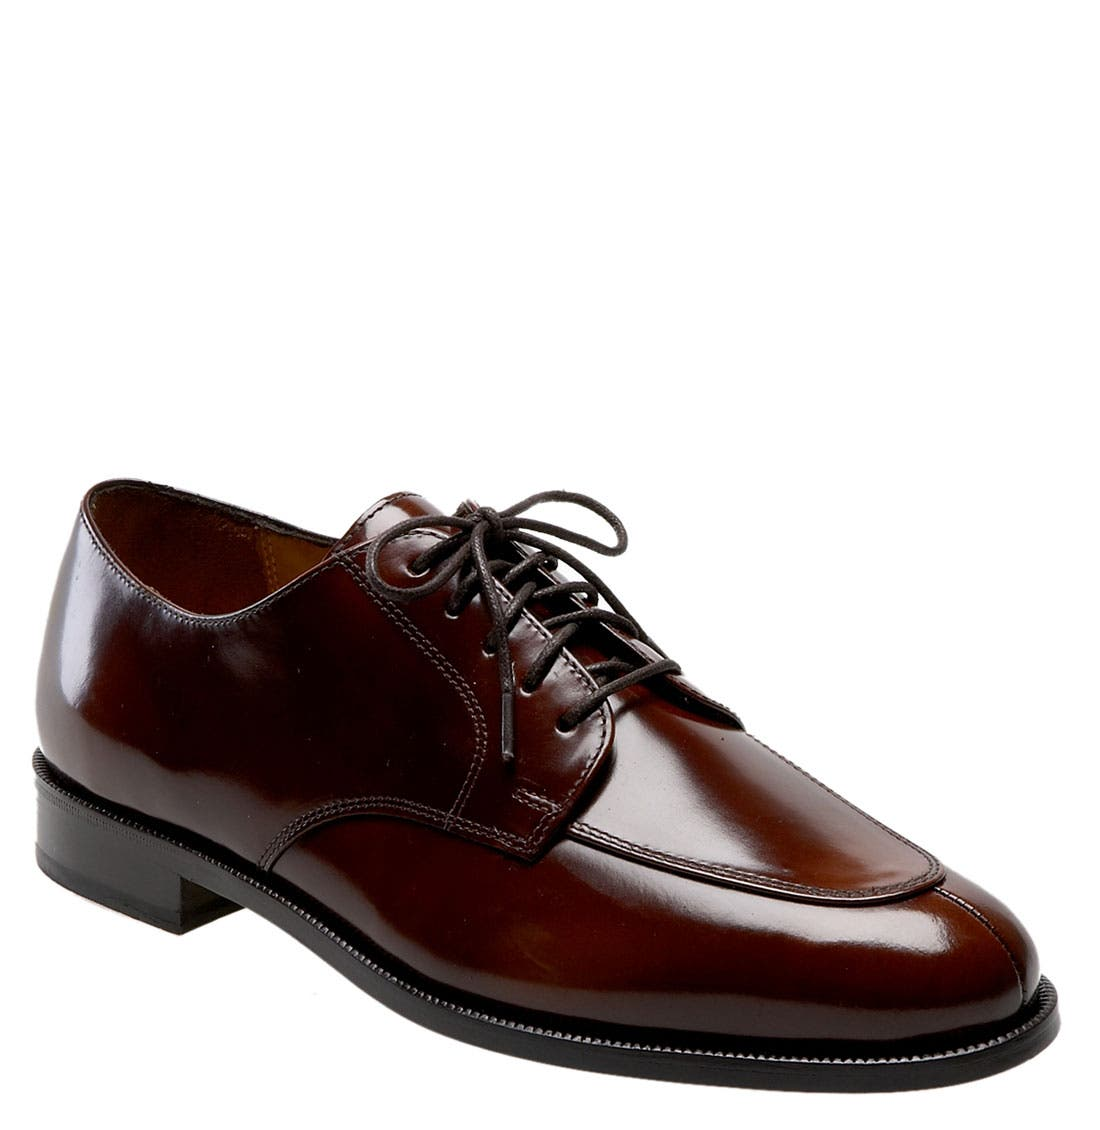 Main Image - Cole Haan 'Calhoun' Oxford (Online Only)   (Men)